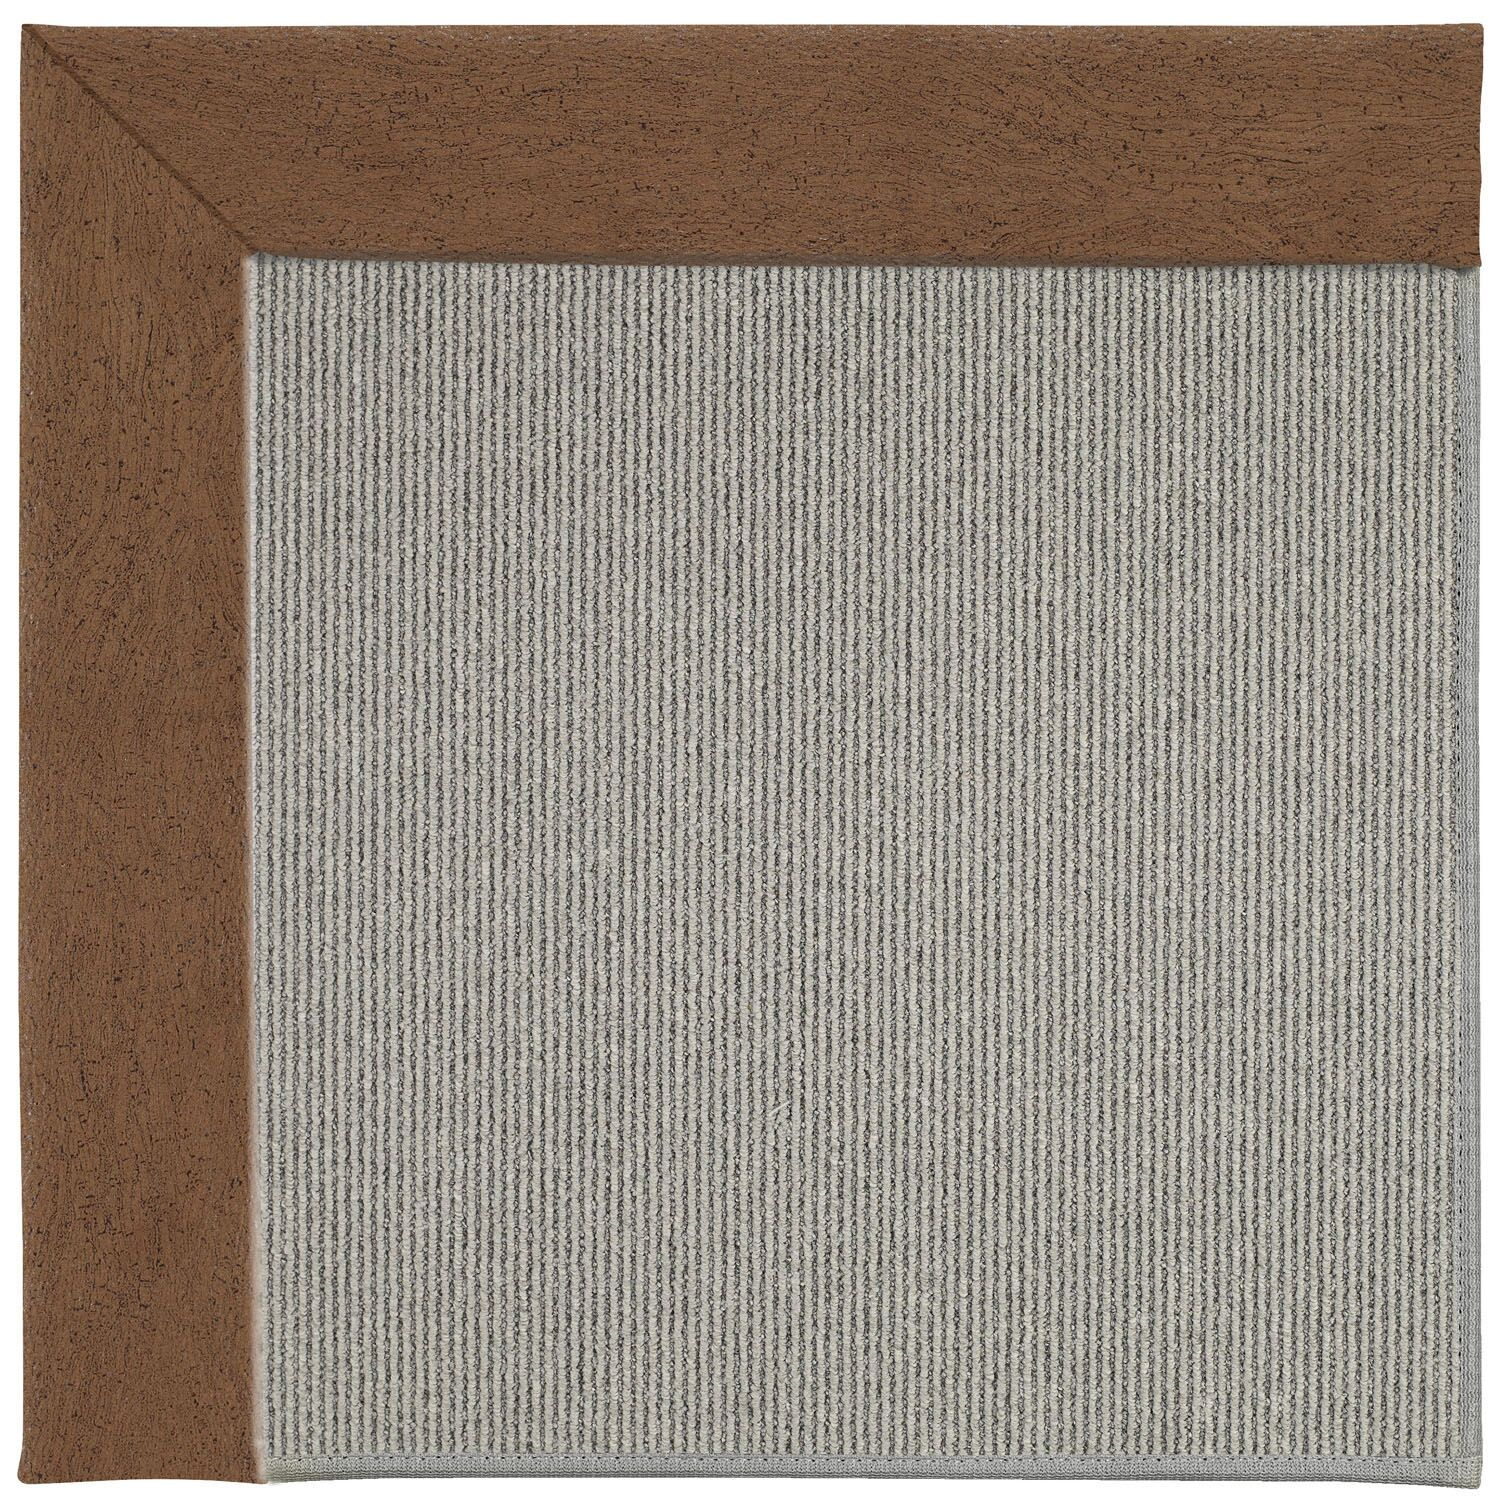 Barrett Silver Machine Tufted Camel/Gray Area Rug Rug Size: Square 6'